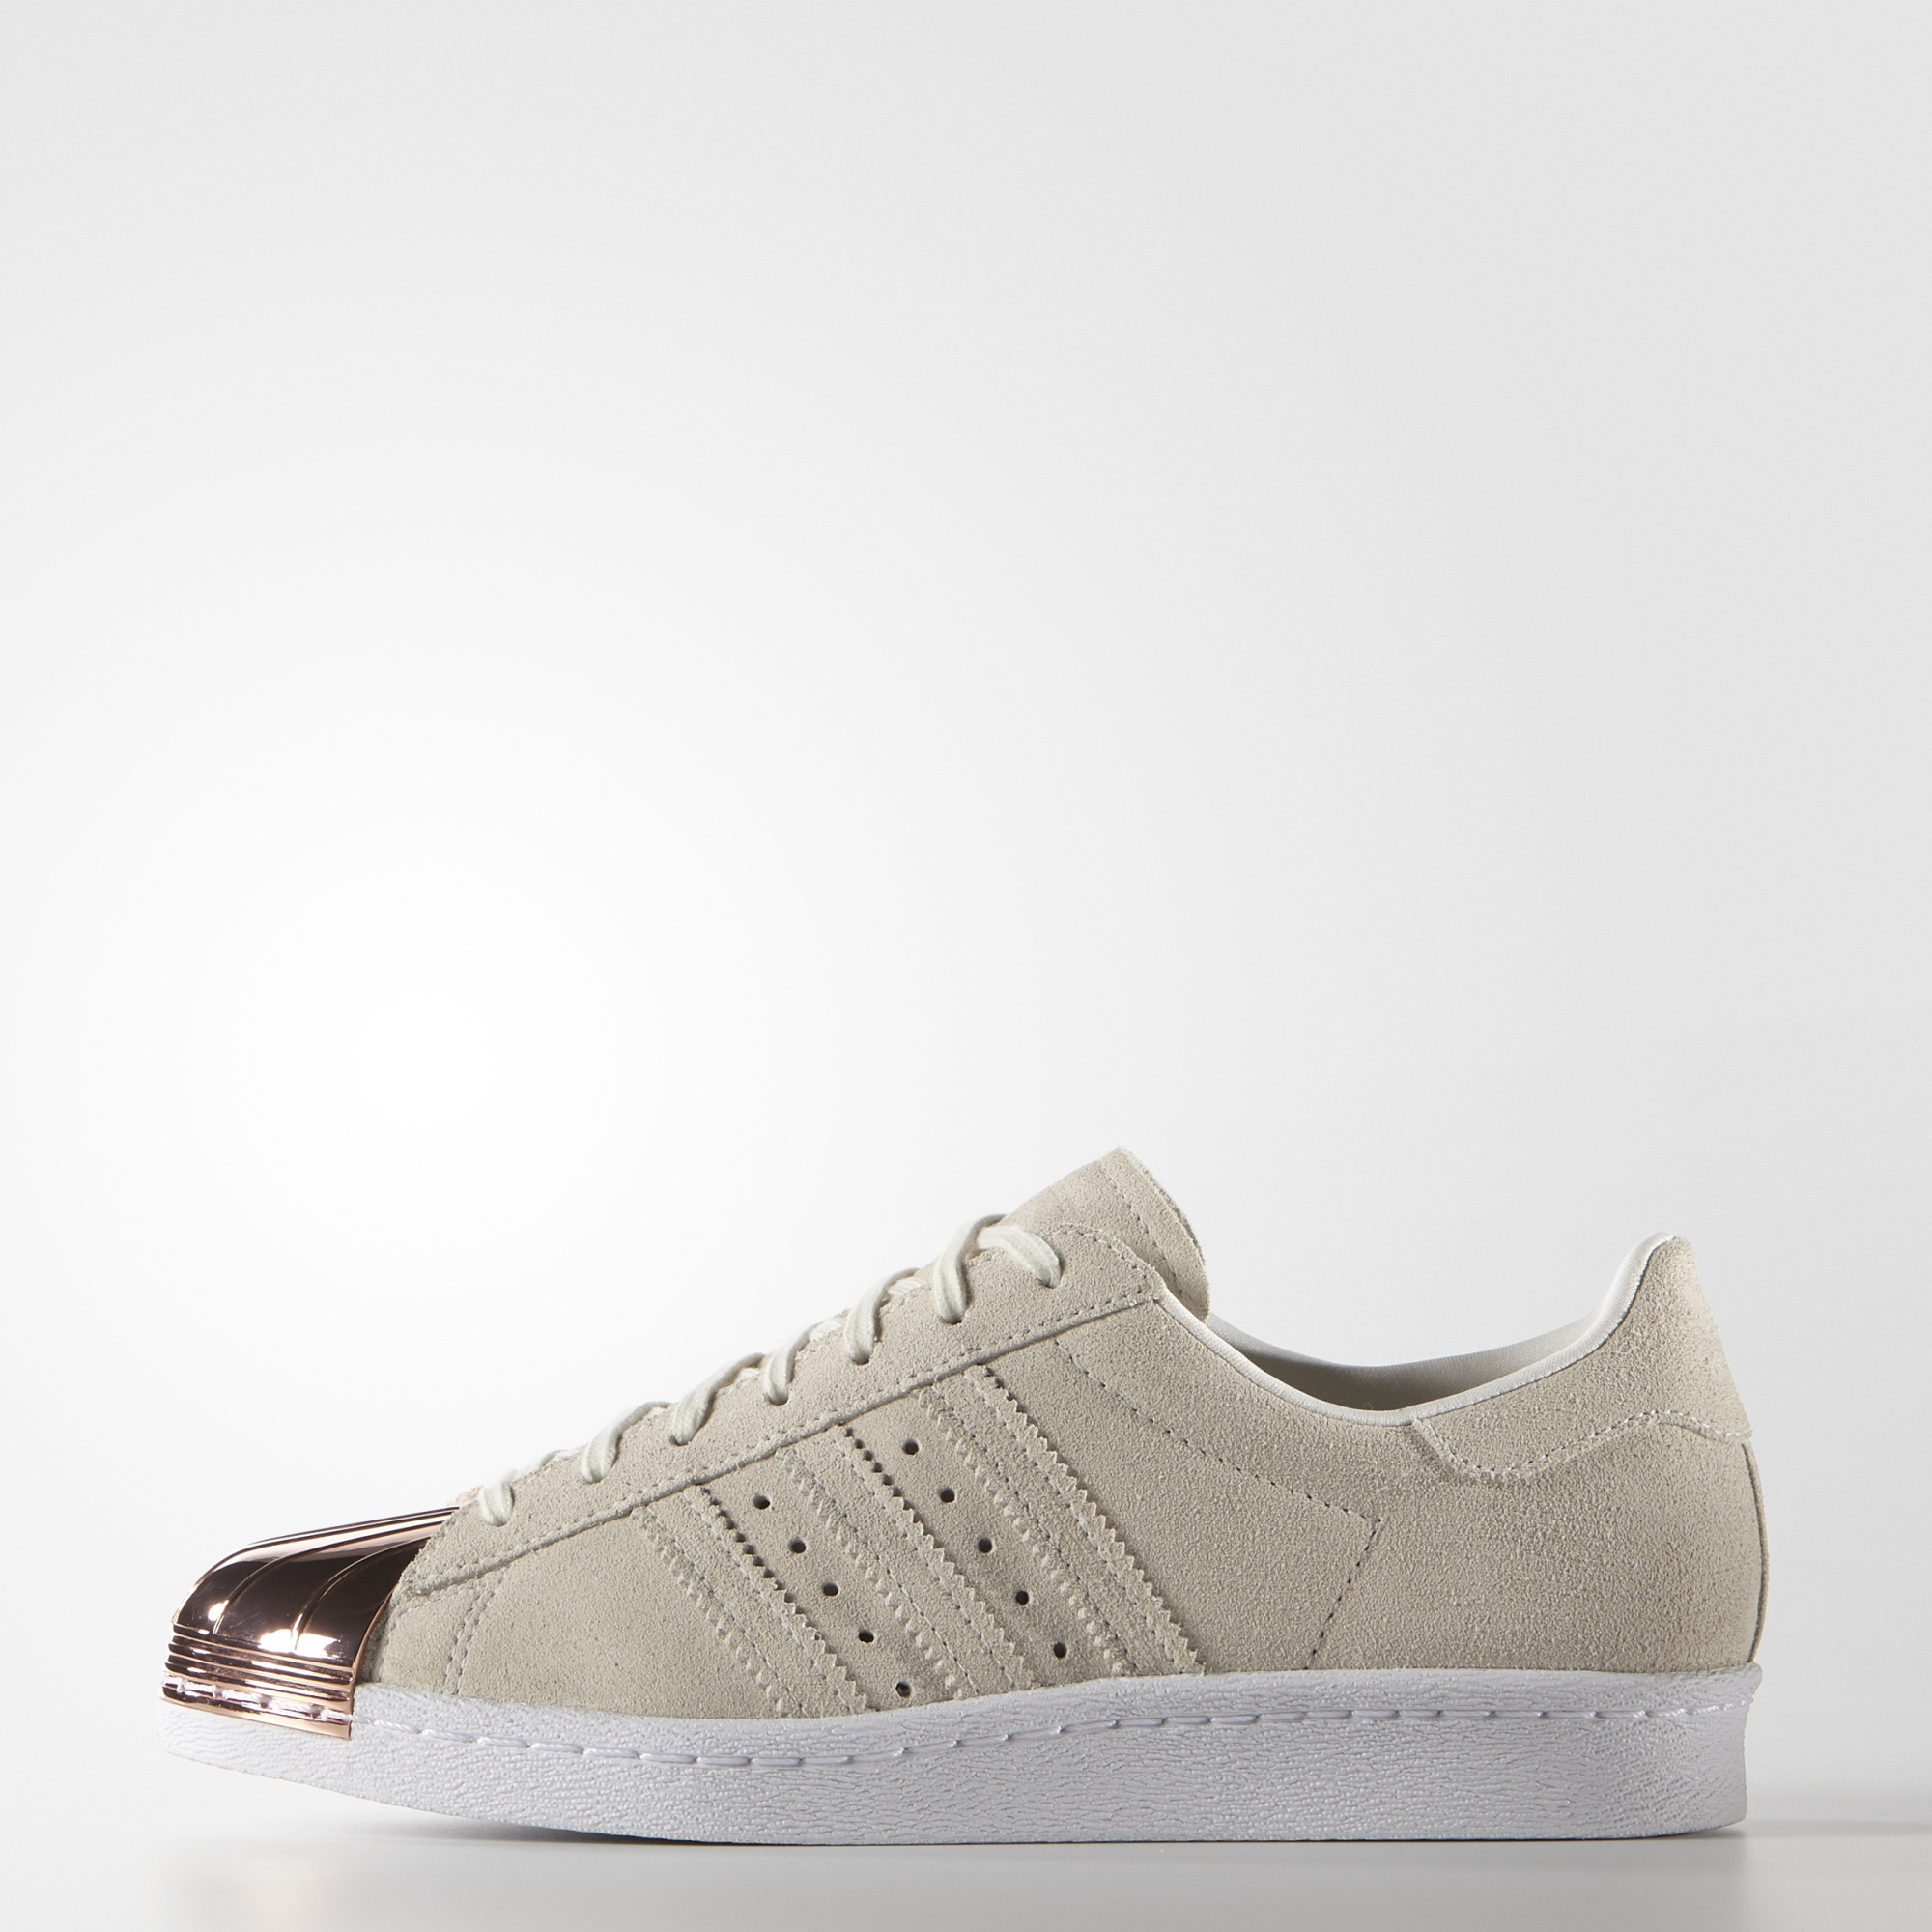 adidas superstar 80s metal toe womens white